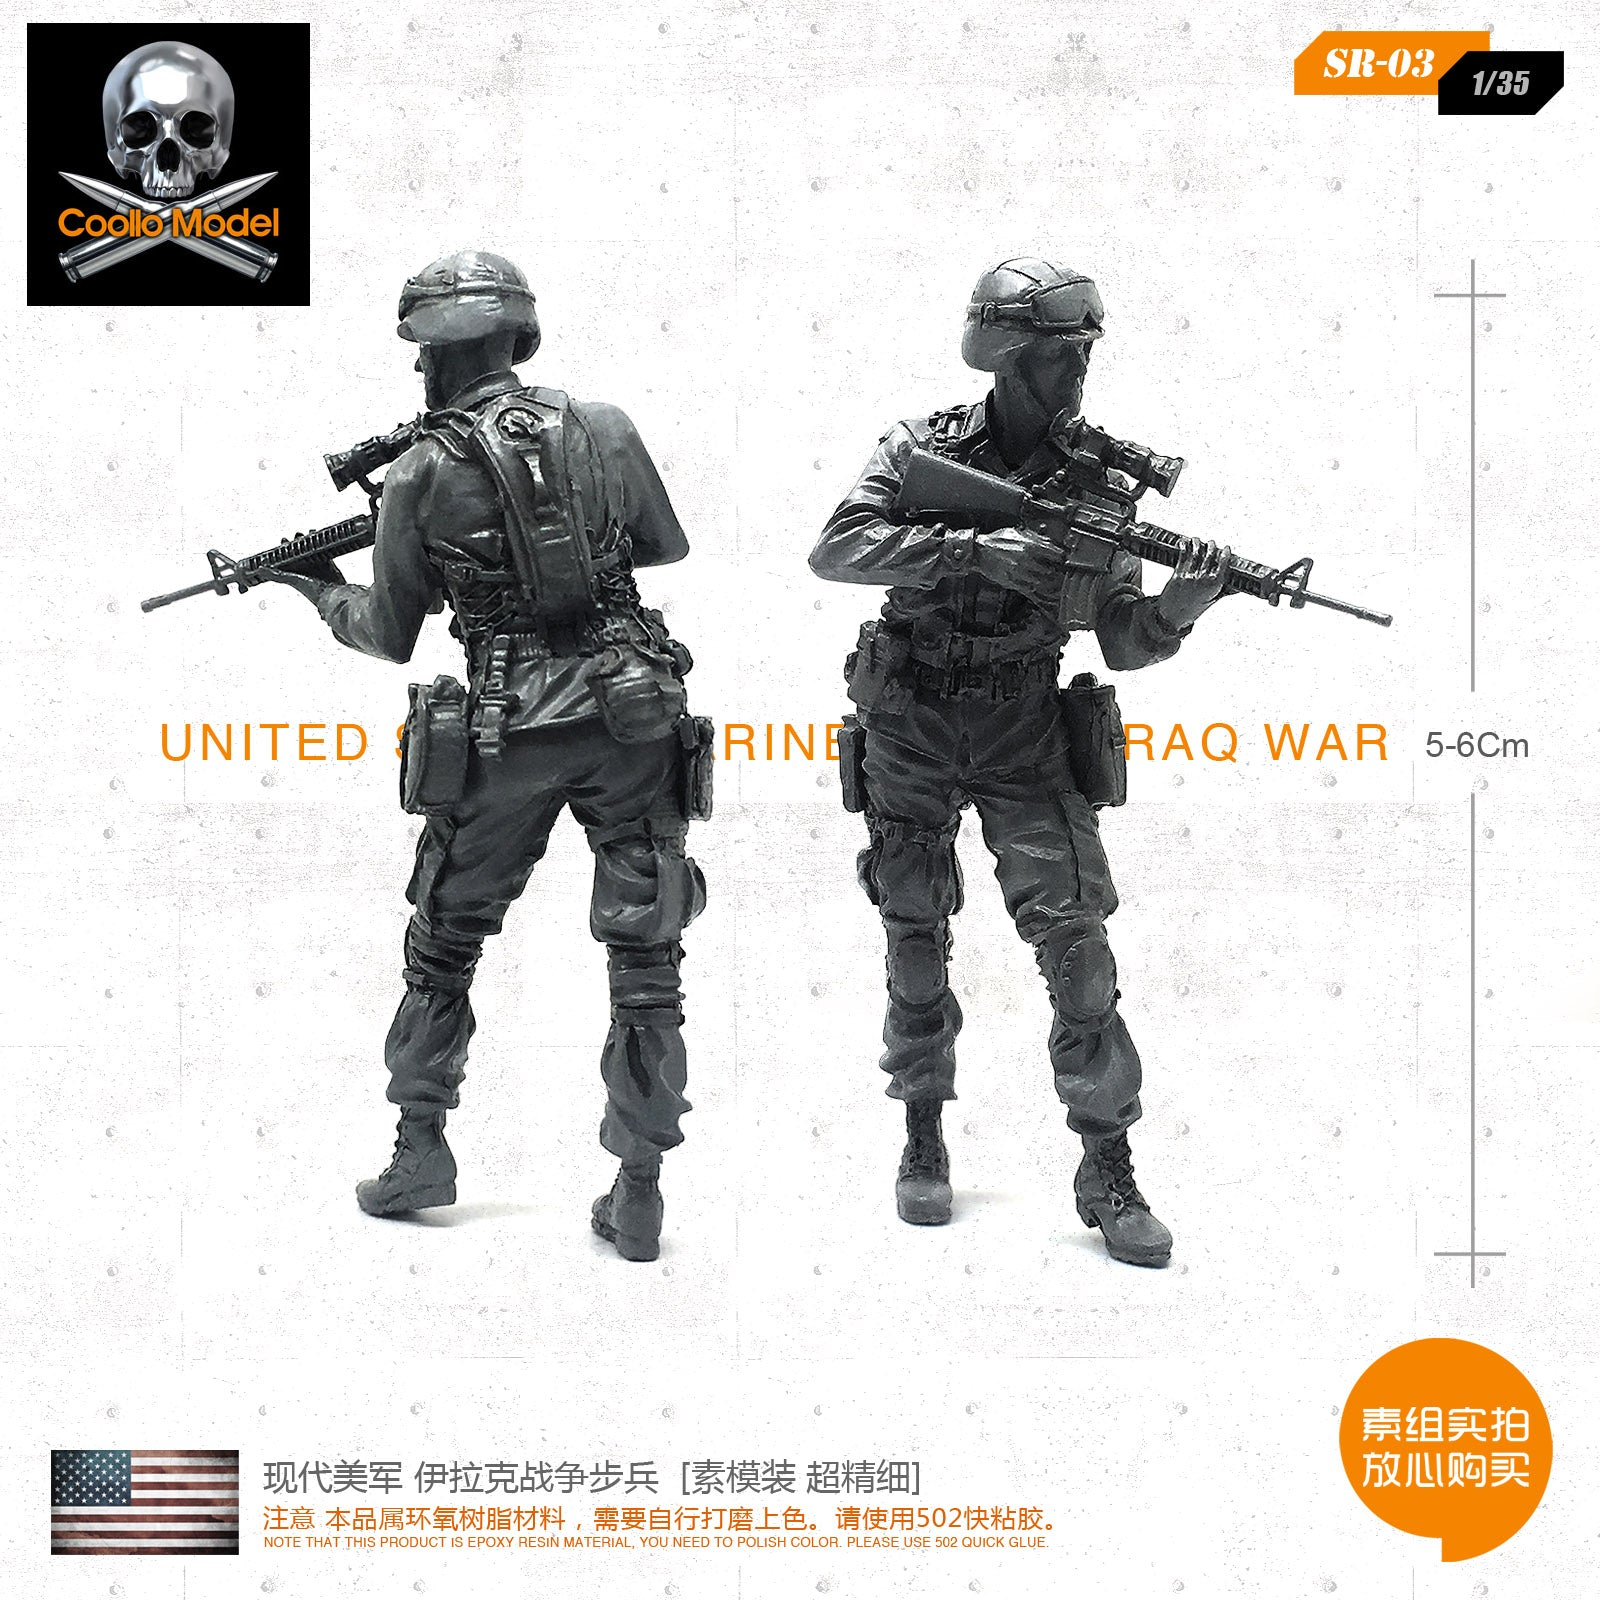 1/35 modern US military Iraq war infantry resin soldiers [prime mold super fine] SR-03